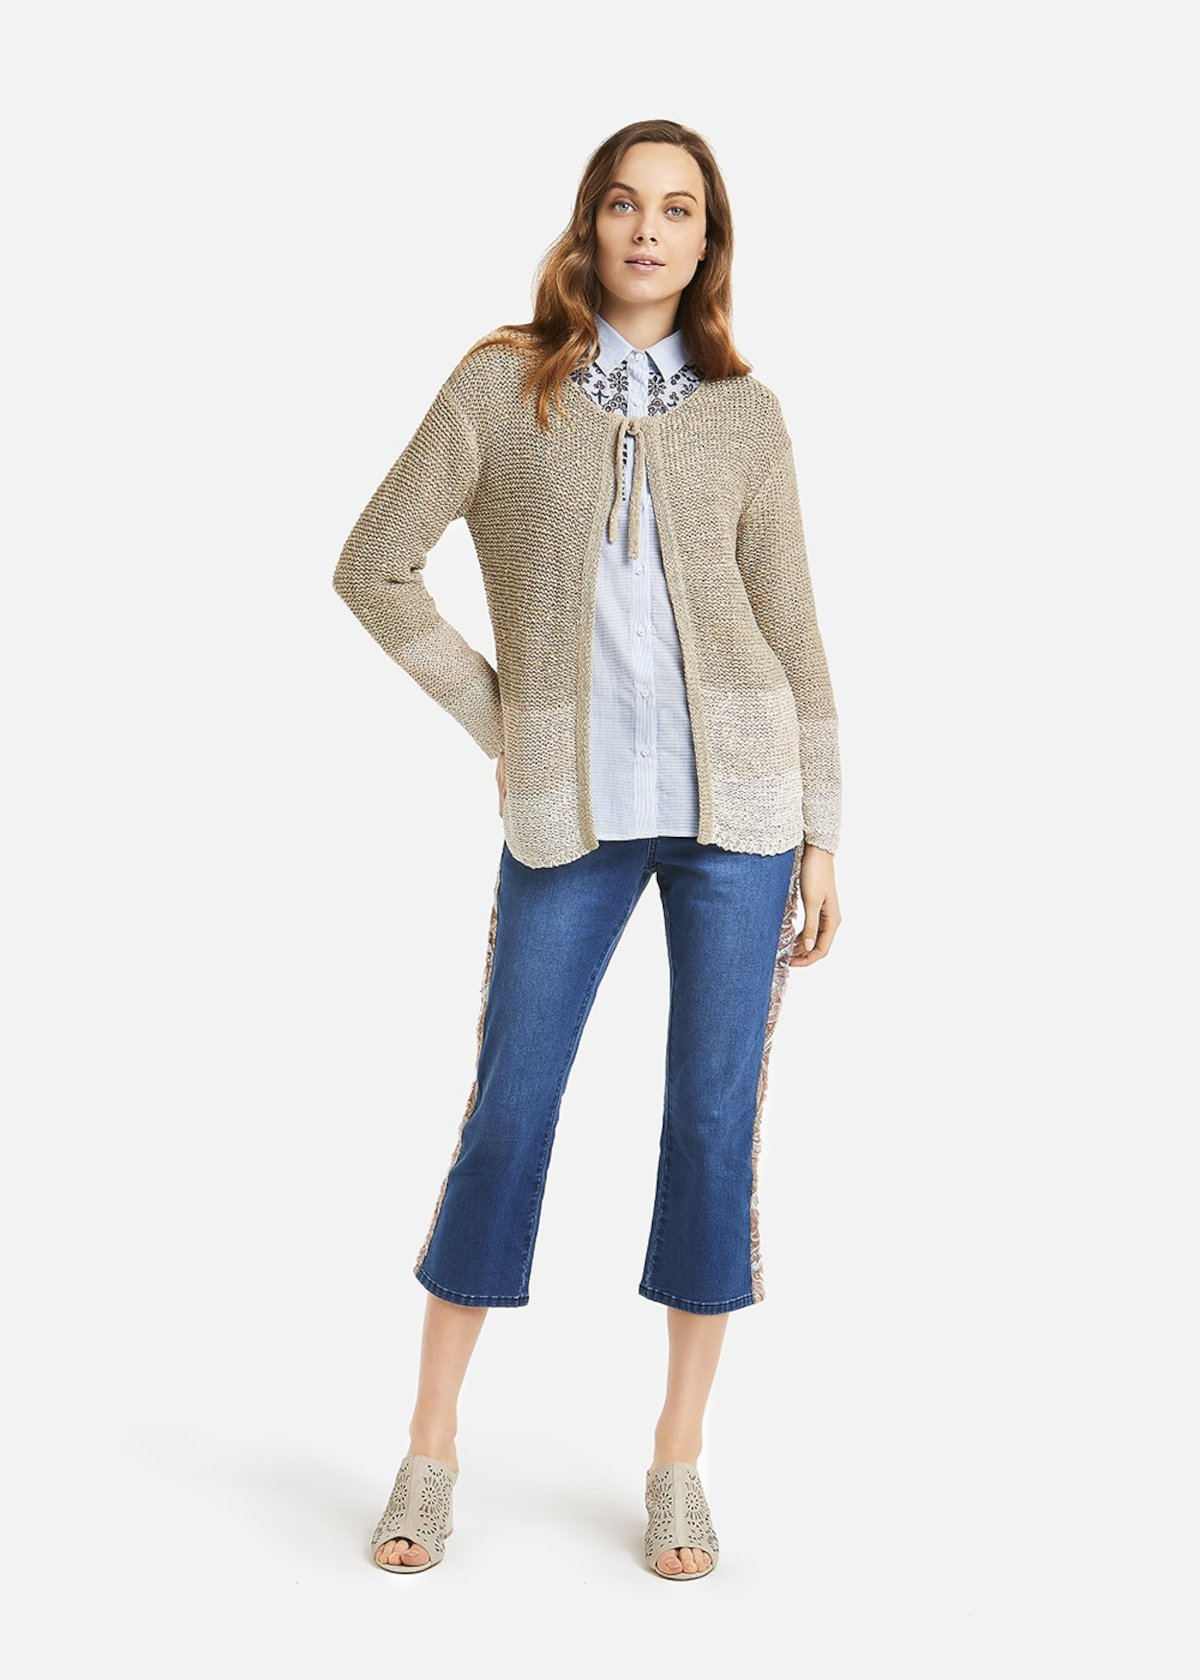 Cardigan Caddy shade details  with bow - Beige